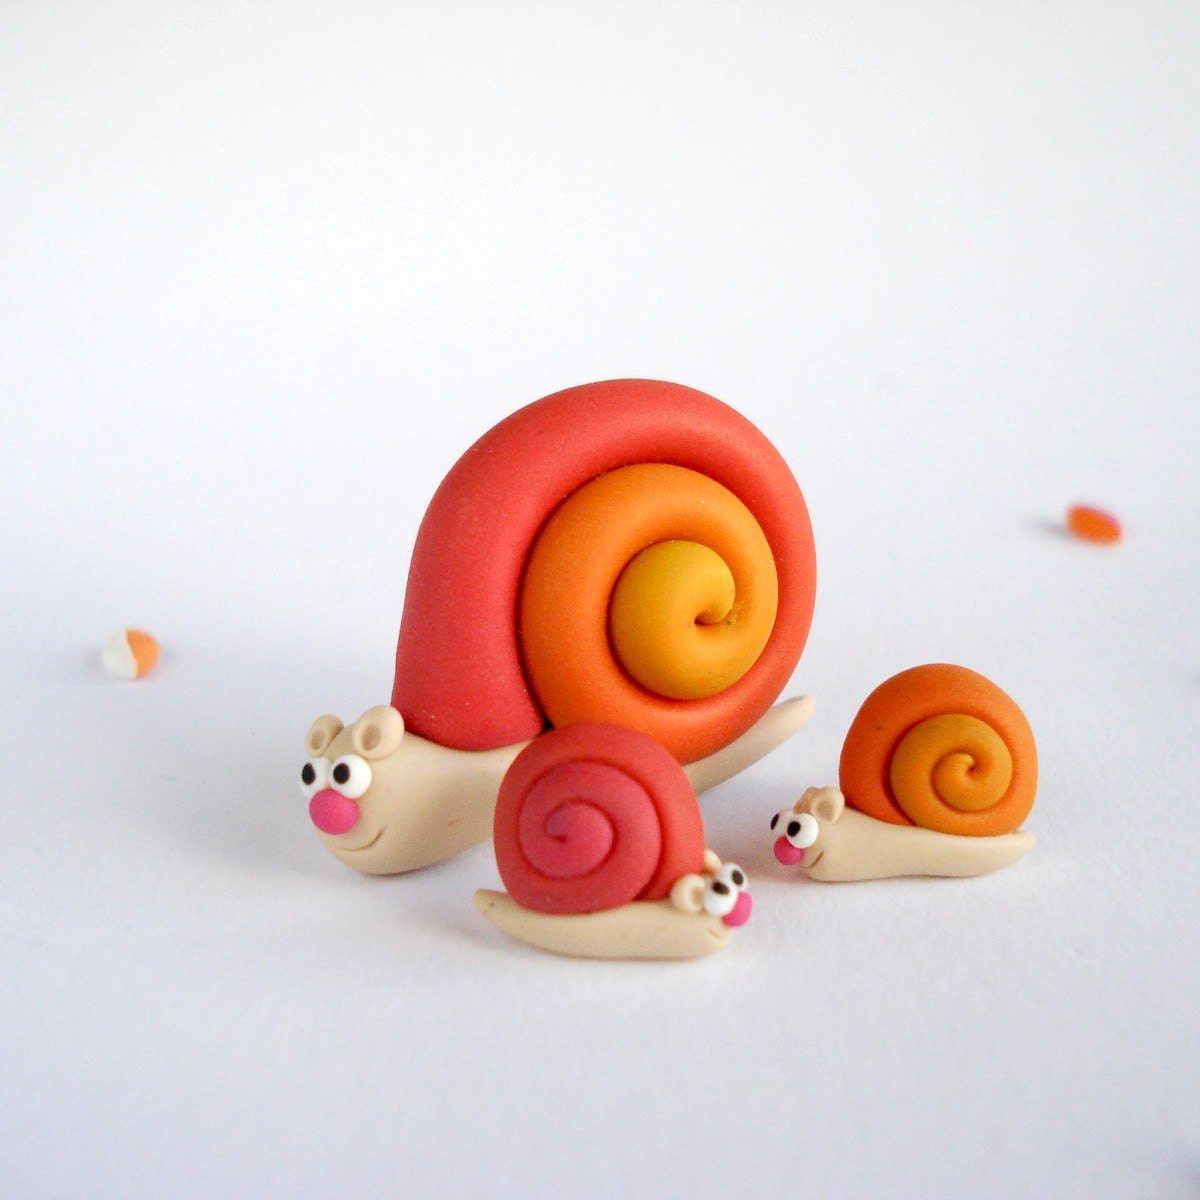 Tropical Snail Brooch and Earrings Set, Summer jewelry hand sculpted in polymer clay - Thelittlecreatures